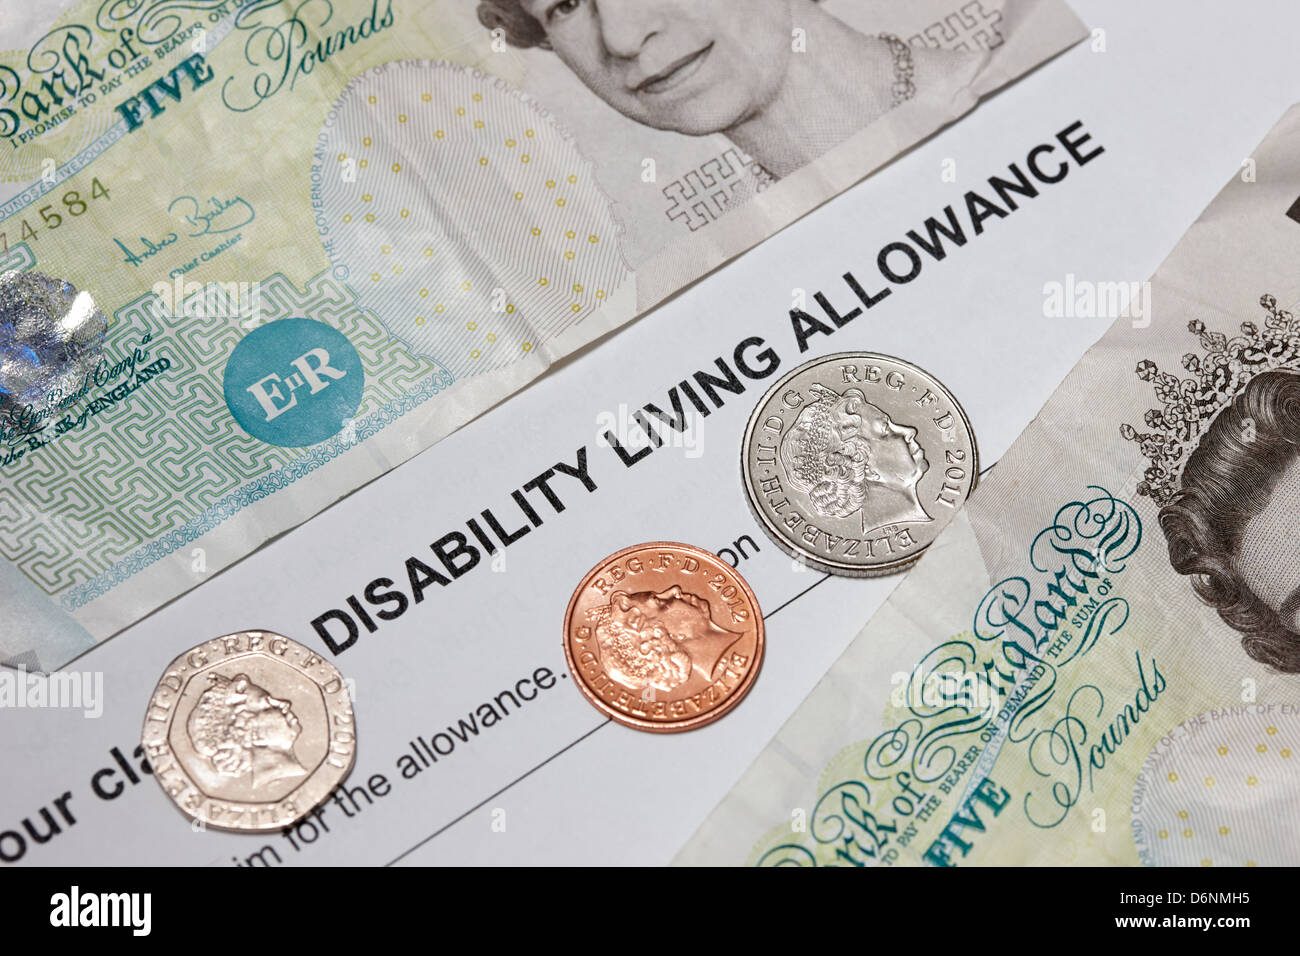 obsolete disability living allowance statement british state benefit - Stock Image